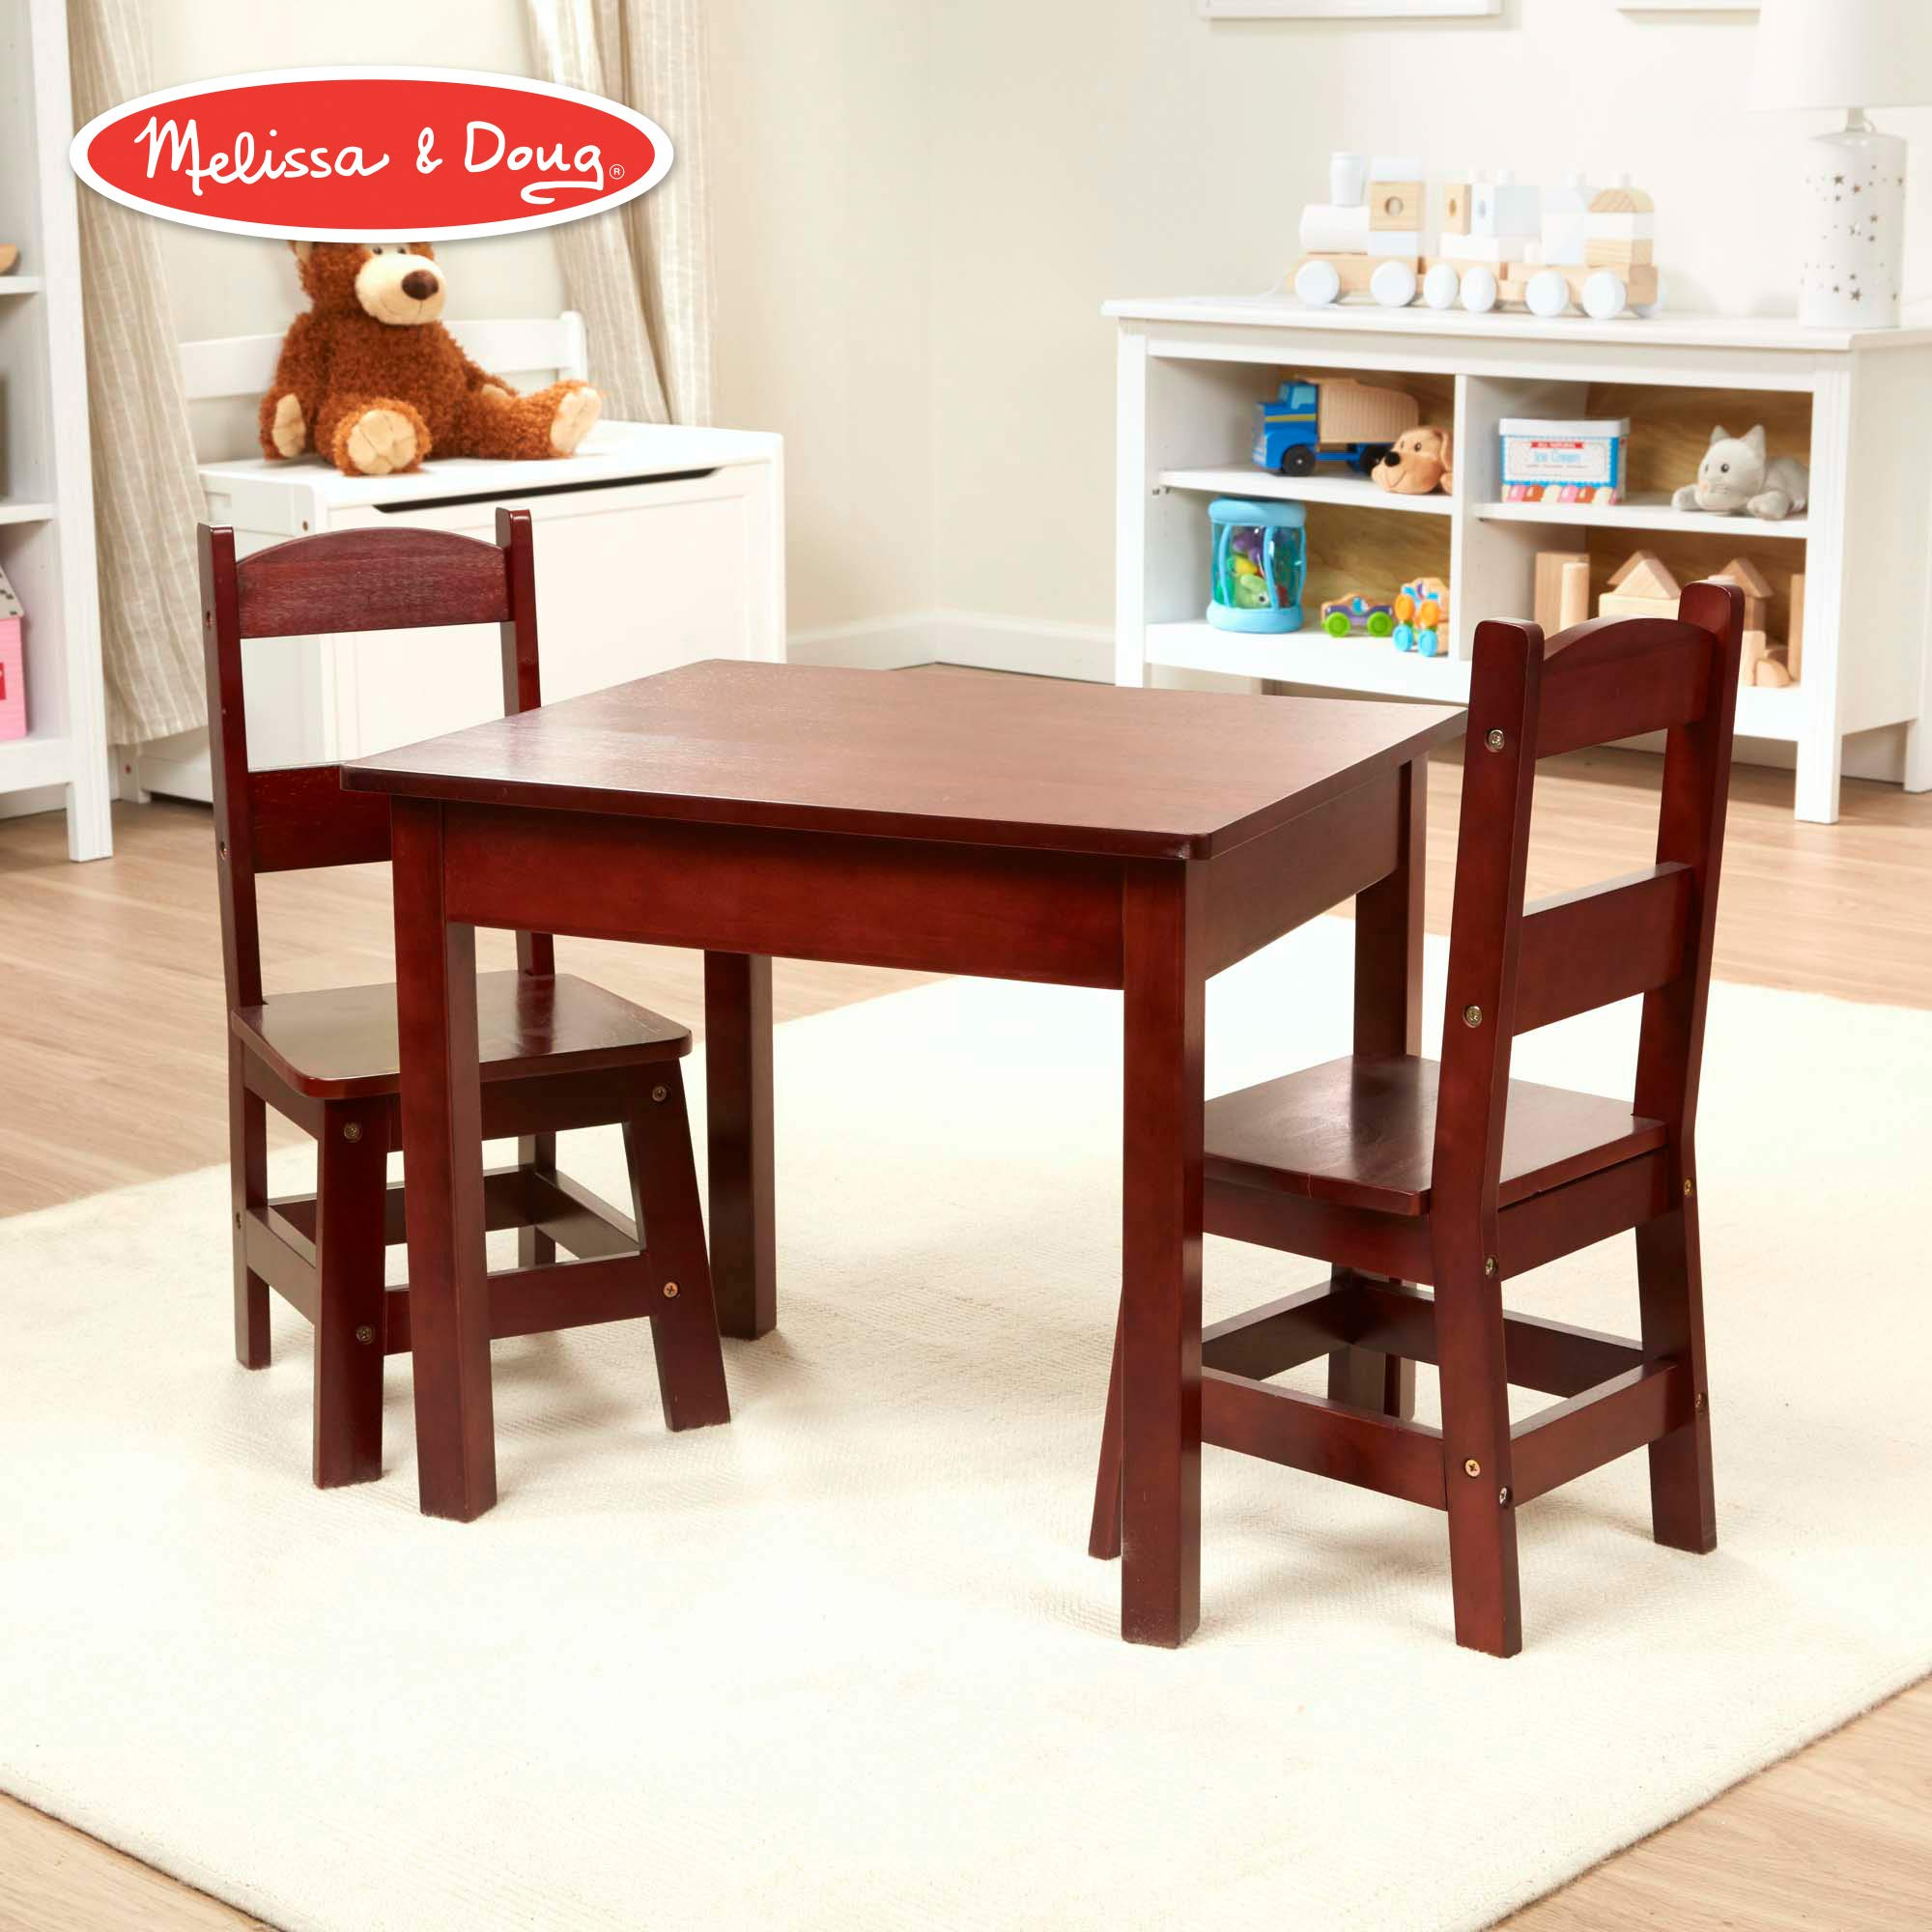 Melissa & Doug Wooden Table and Chairs Set  - Espresso by Melissa & Doug